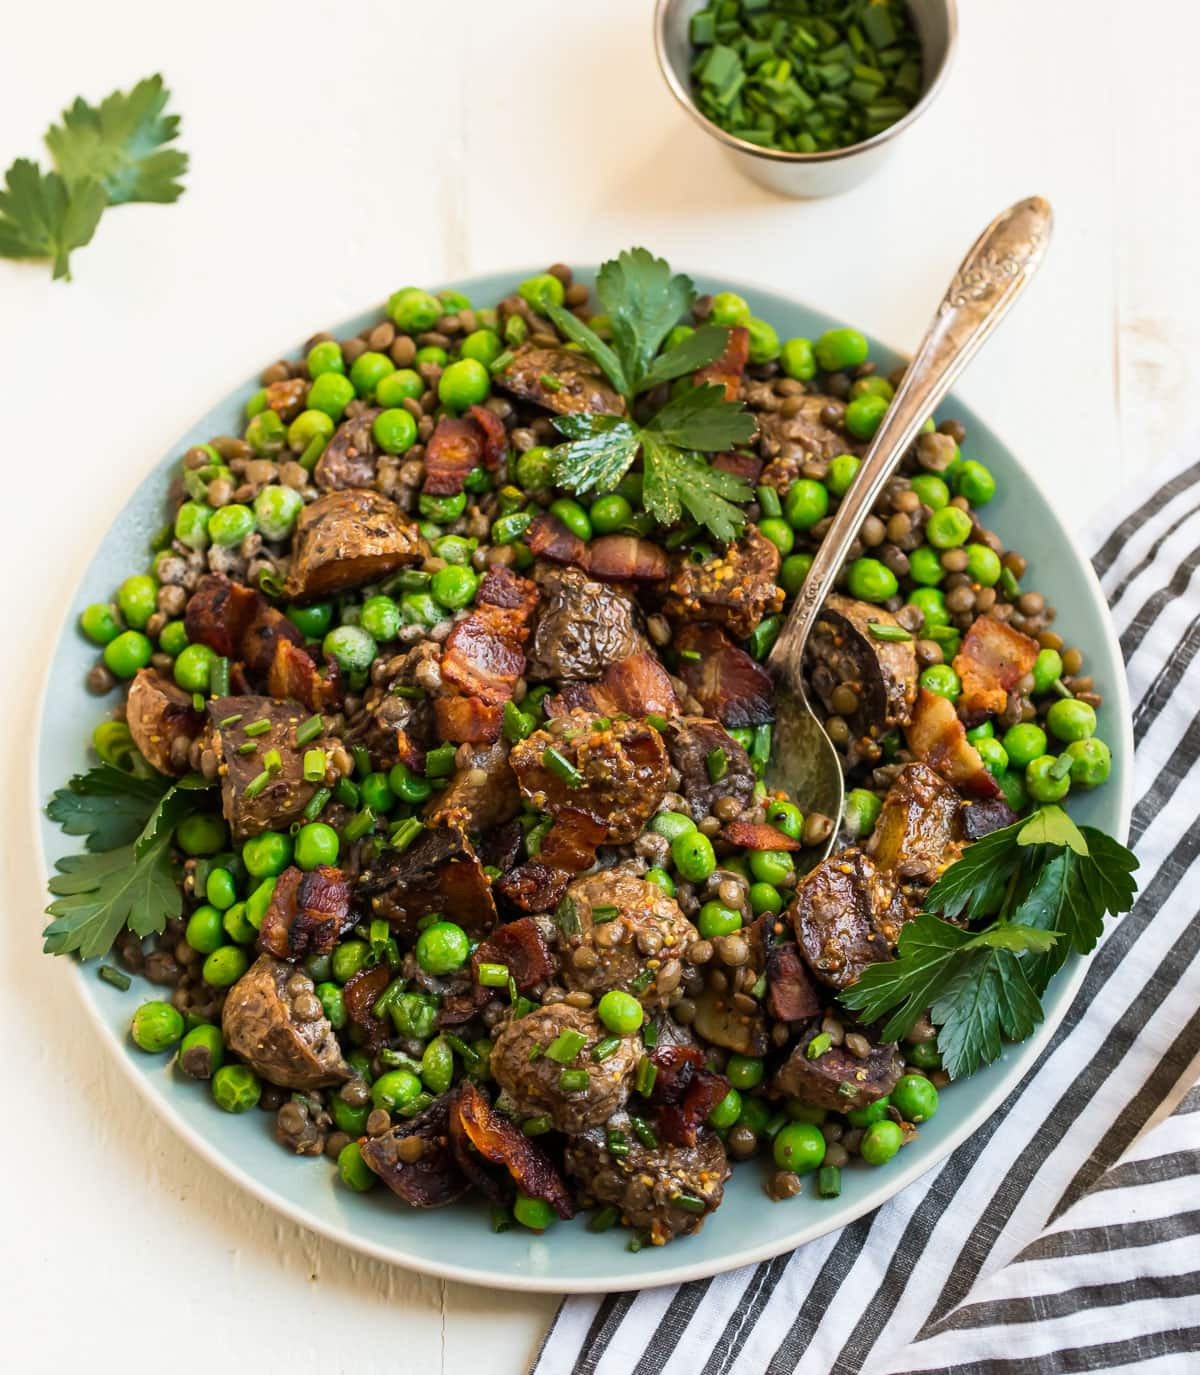 Easy Pea Salad. A delicious spring salad with bacon, potatoes, and lentils.